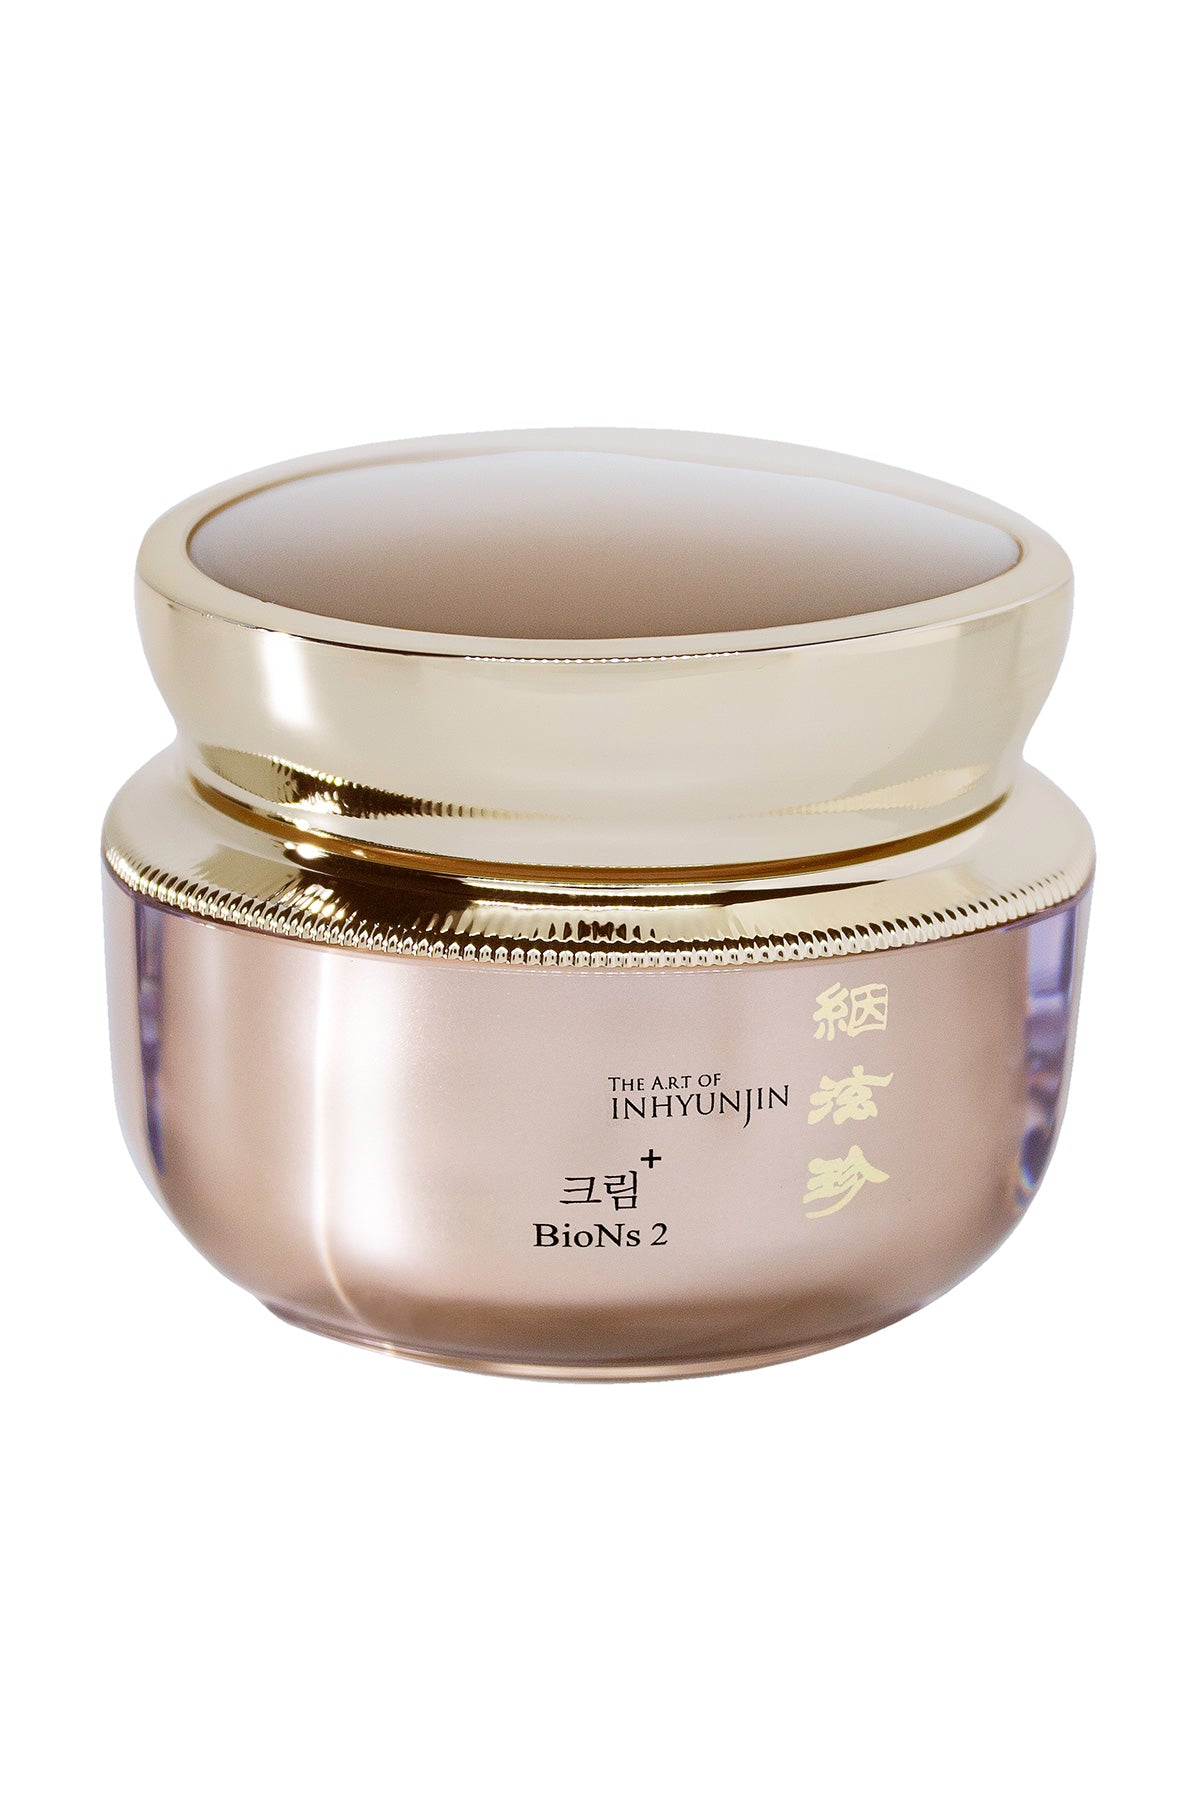 Inhyunjin Cream Intensive Night Repair